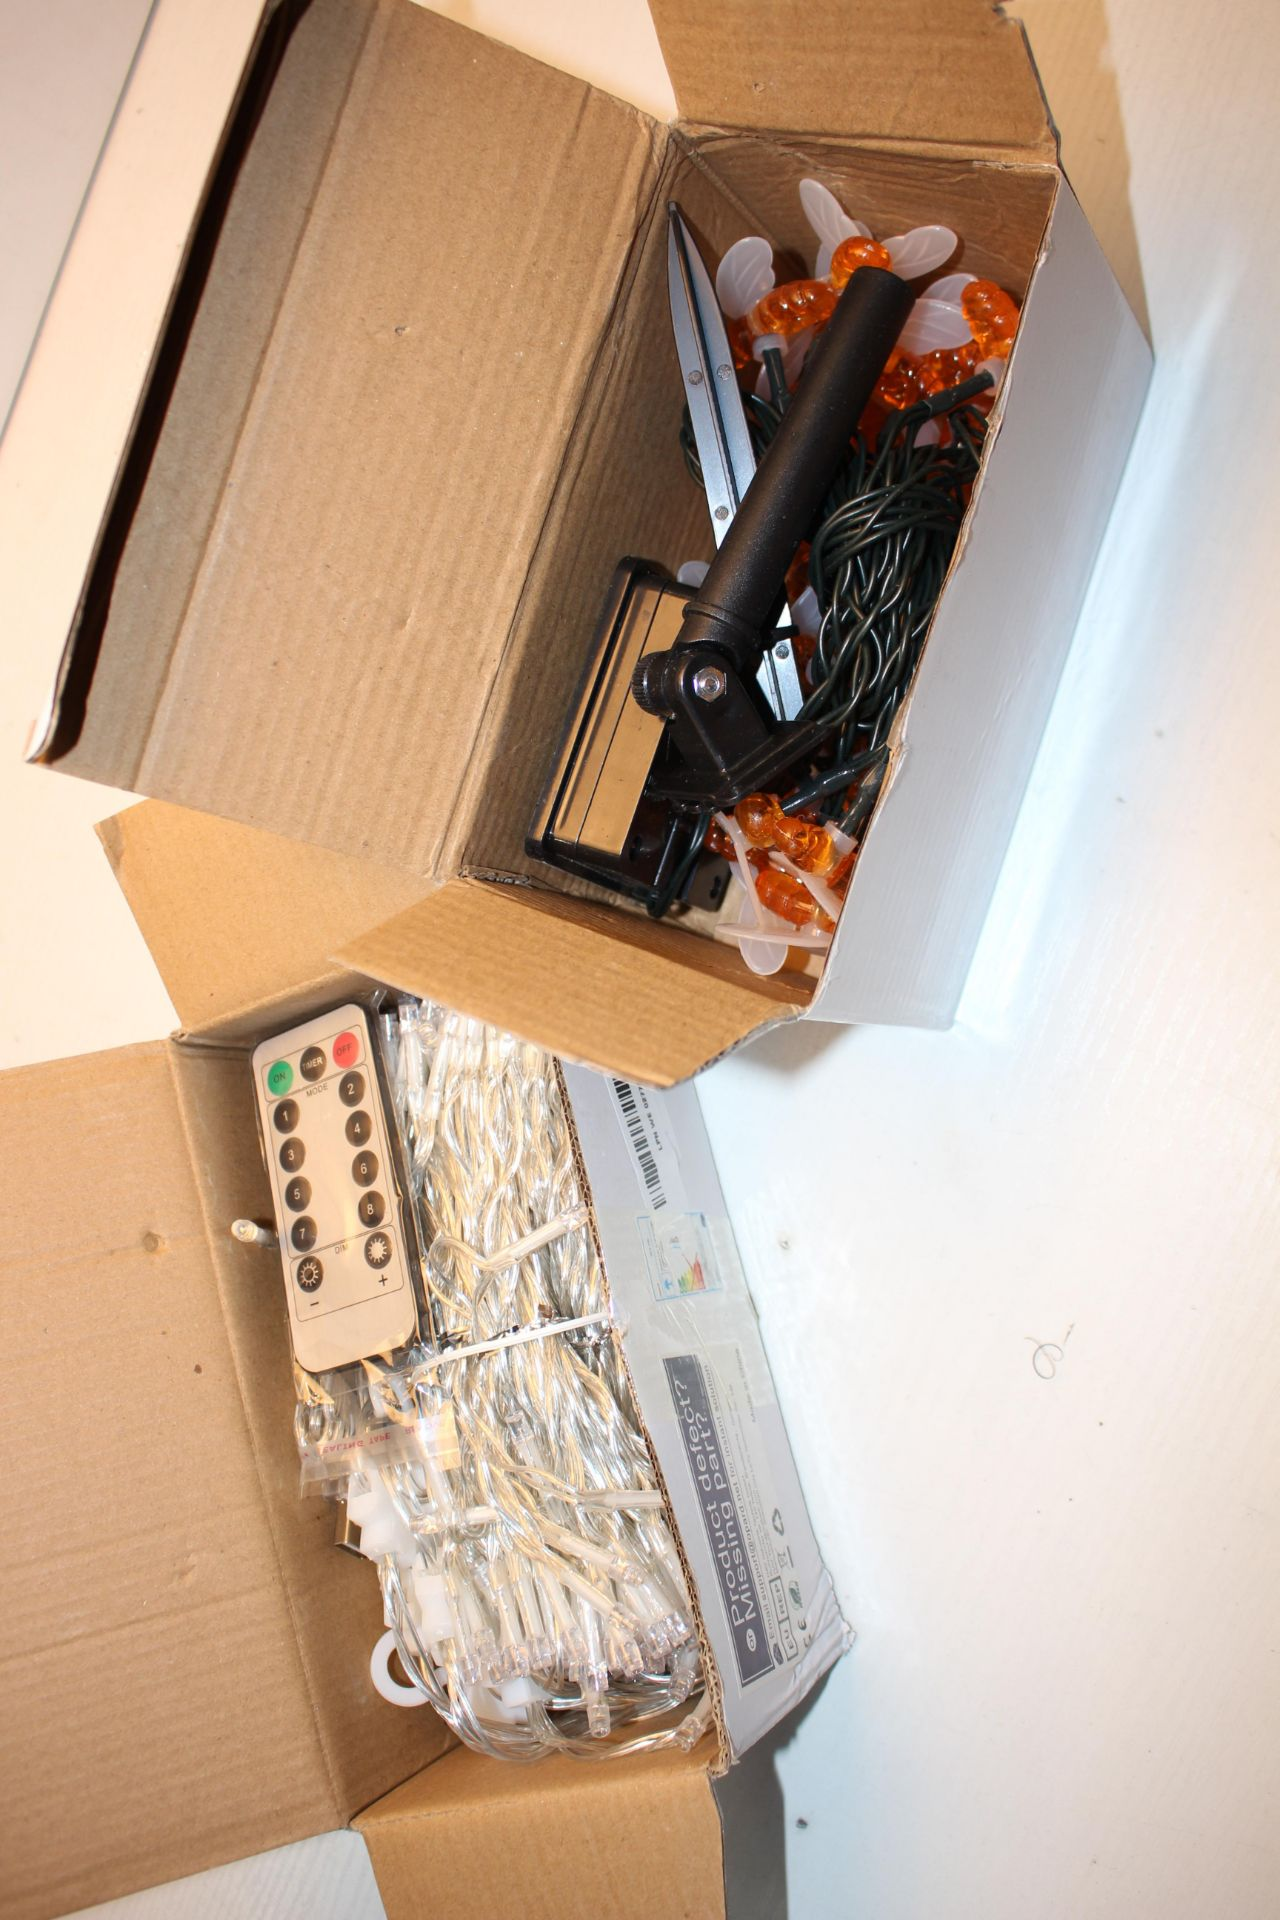 2X BOXED SETS OF STRING LIGHTS (IMAGE DEPICTS STOCK)Condition ReportAppraisal Available on